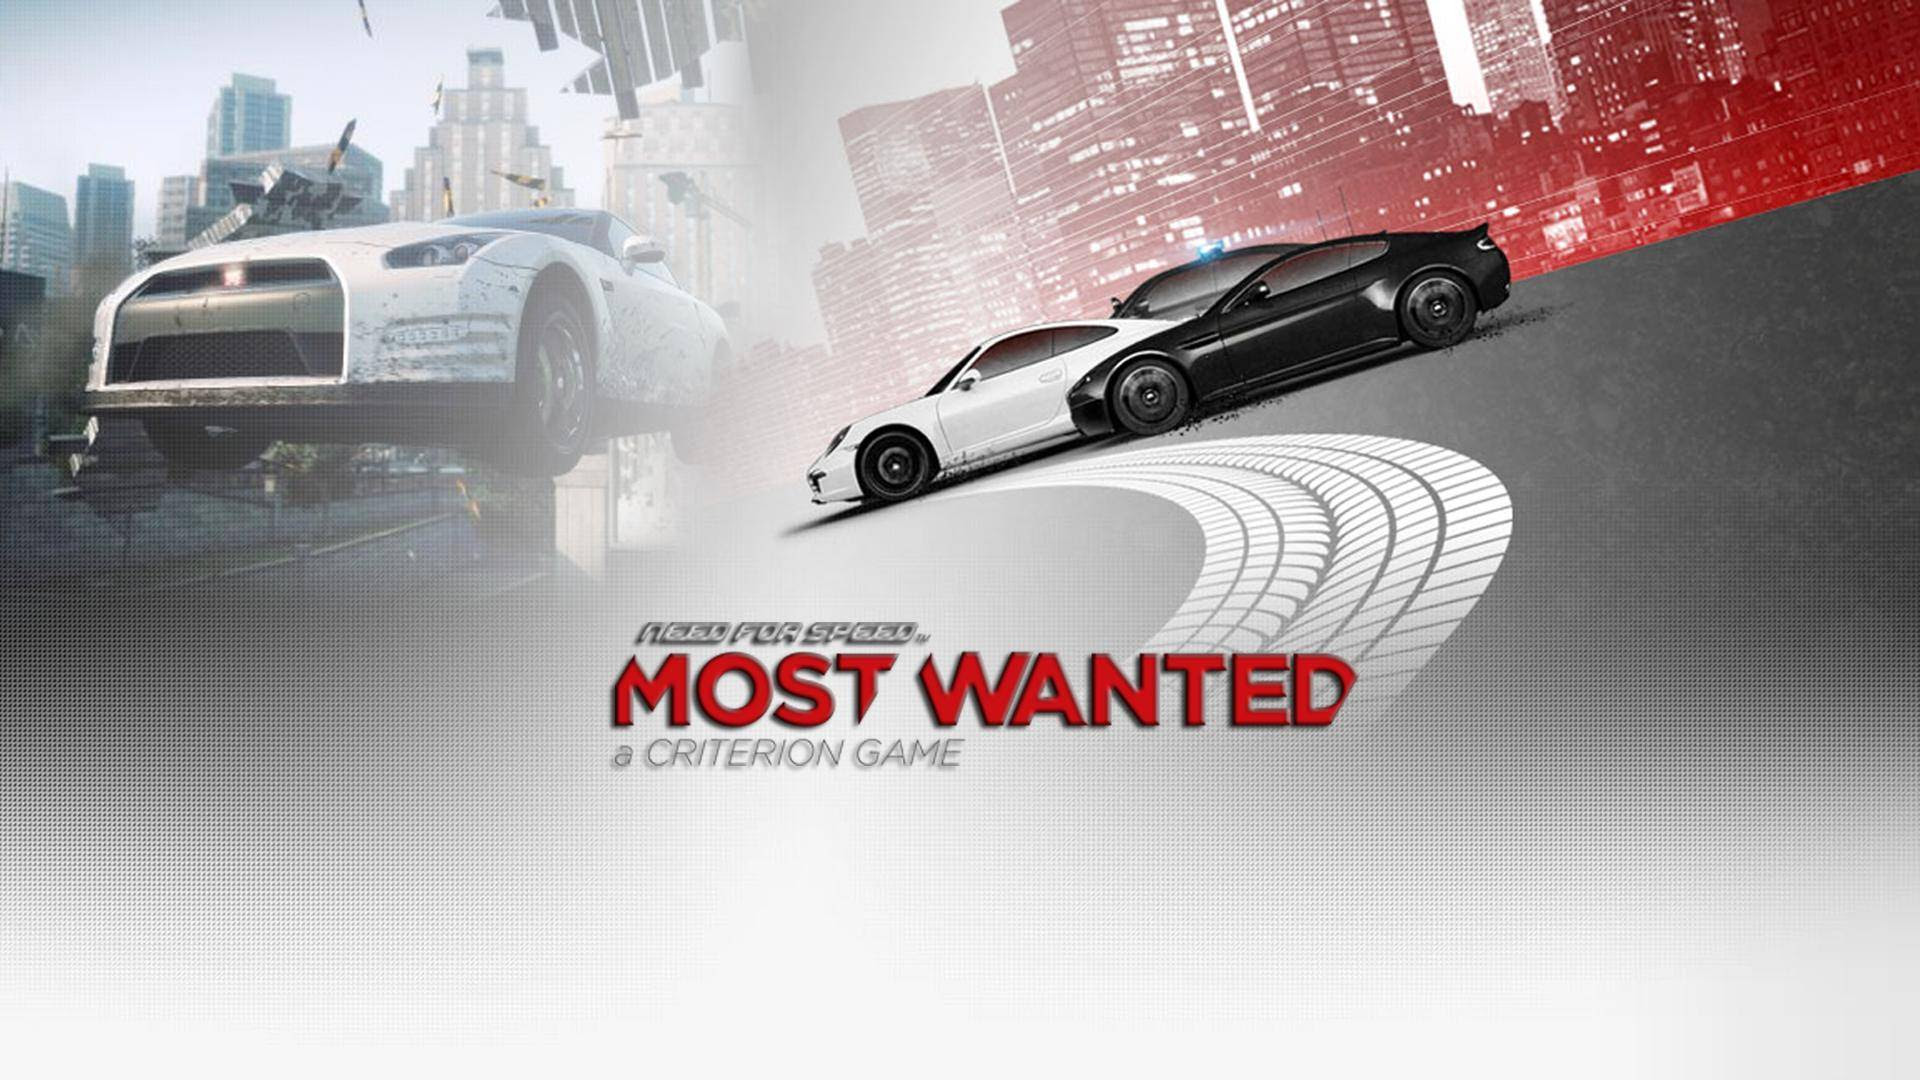 http://gamingbolt.com/wp-content/uploads/2012/09/Need-For-Speed-Most-Wanted-2012-Wallpaper.jpg